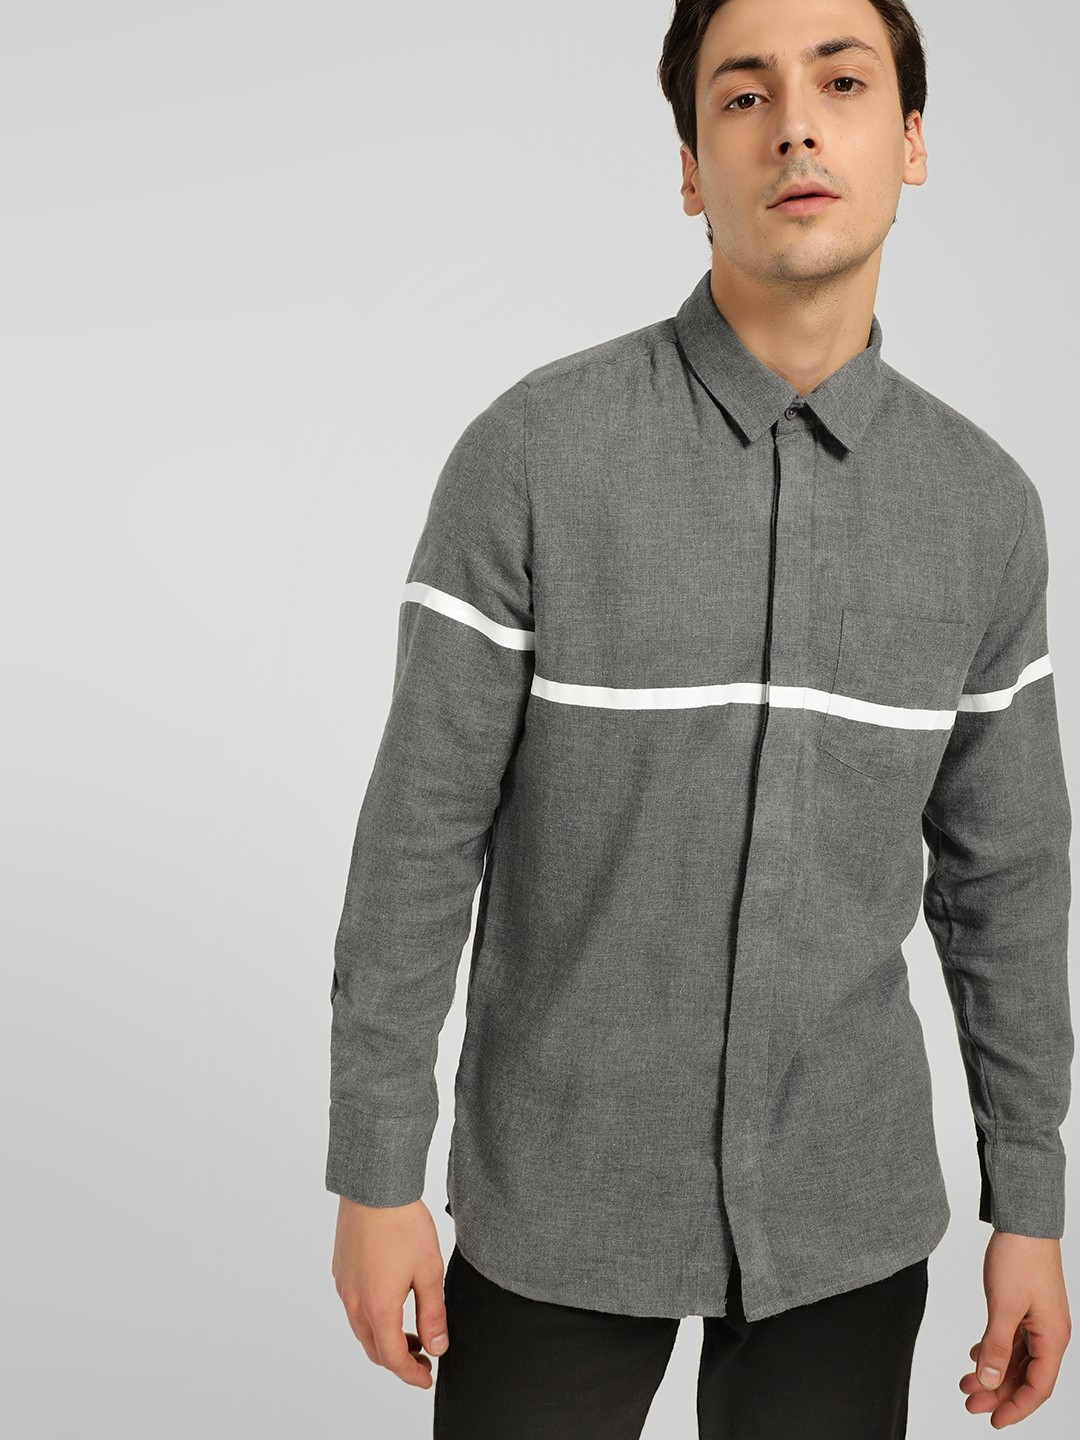 SKULT By Shahid Kapoor Grey Contrast Stripe Casual Shirt 1